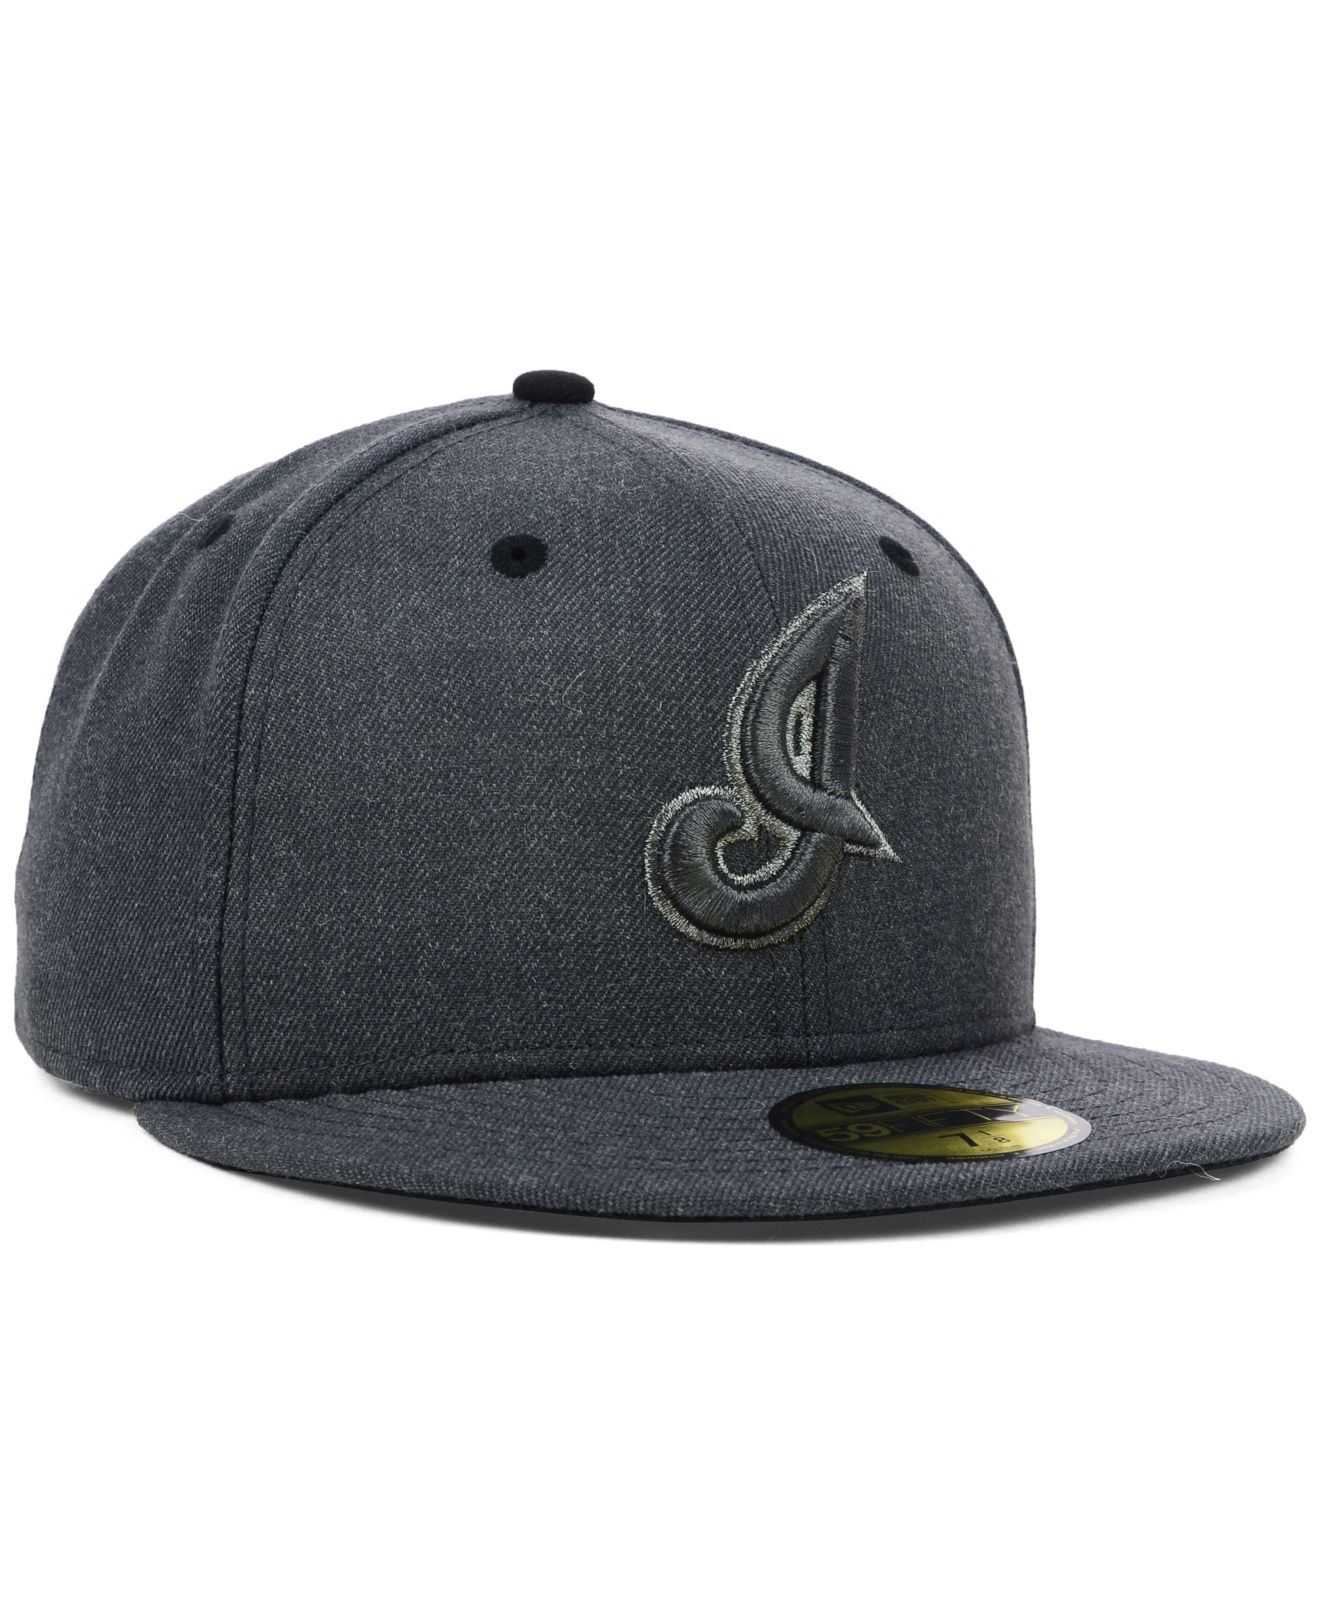 reputable site 8f055 9bc16 ... cleveland indians 59fifty two tone heather 96a96 71b5b  where can i buy  gallery. previously sold at macys mens team hats mens new era